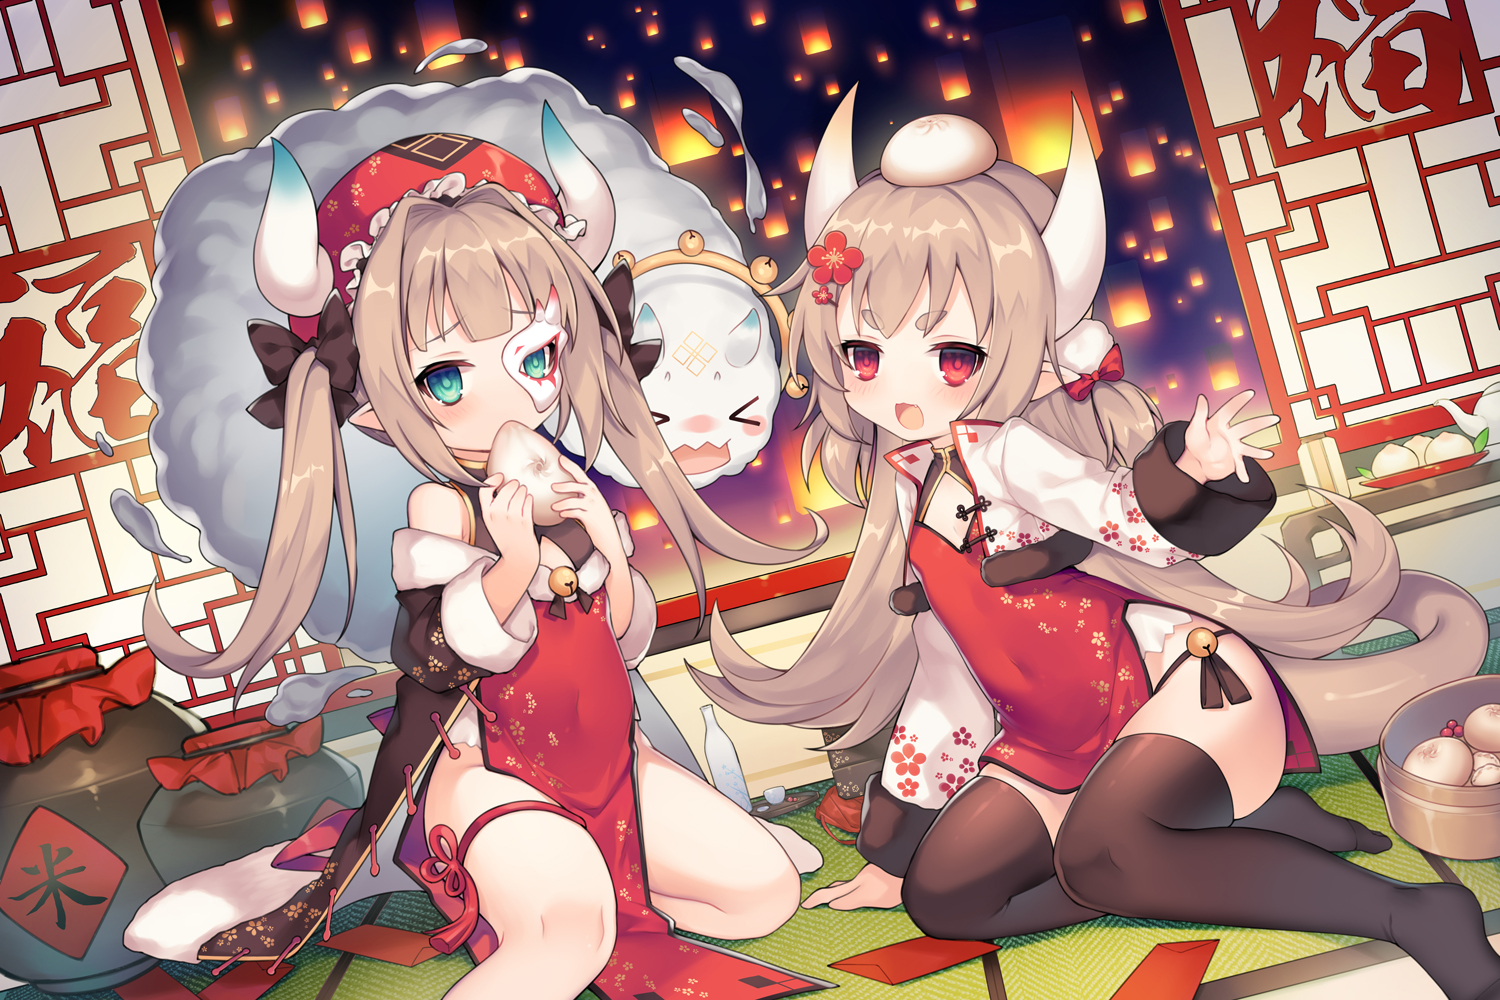 2girls ark_order brown_hair chinese_clothes chinese_dress food green_eyes hat horns loli long_hair mask pointed_ears red_eyes tagme_(character) tail thighhighs twintails utm